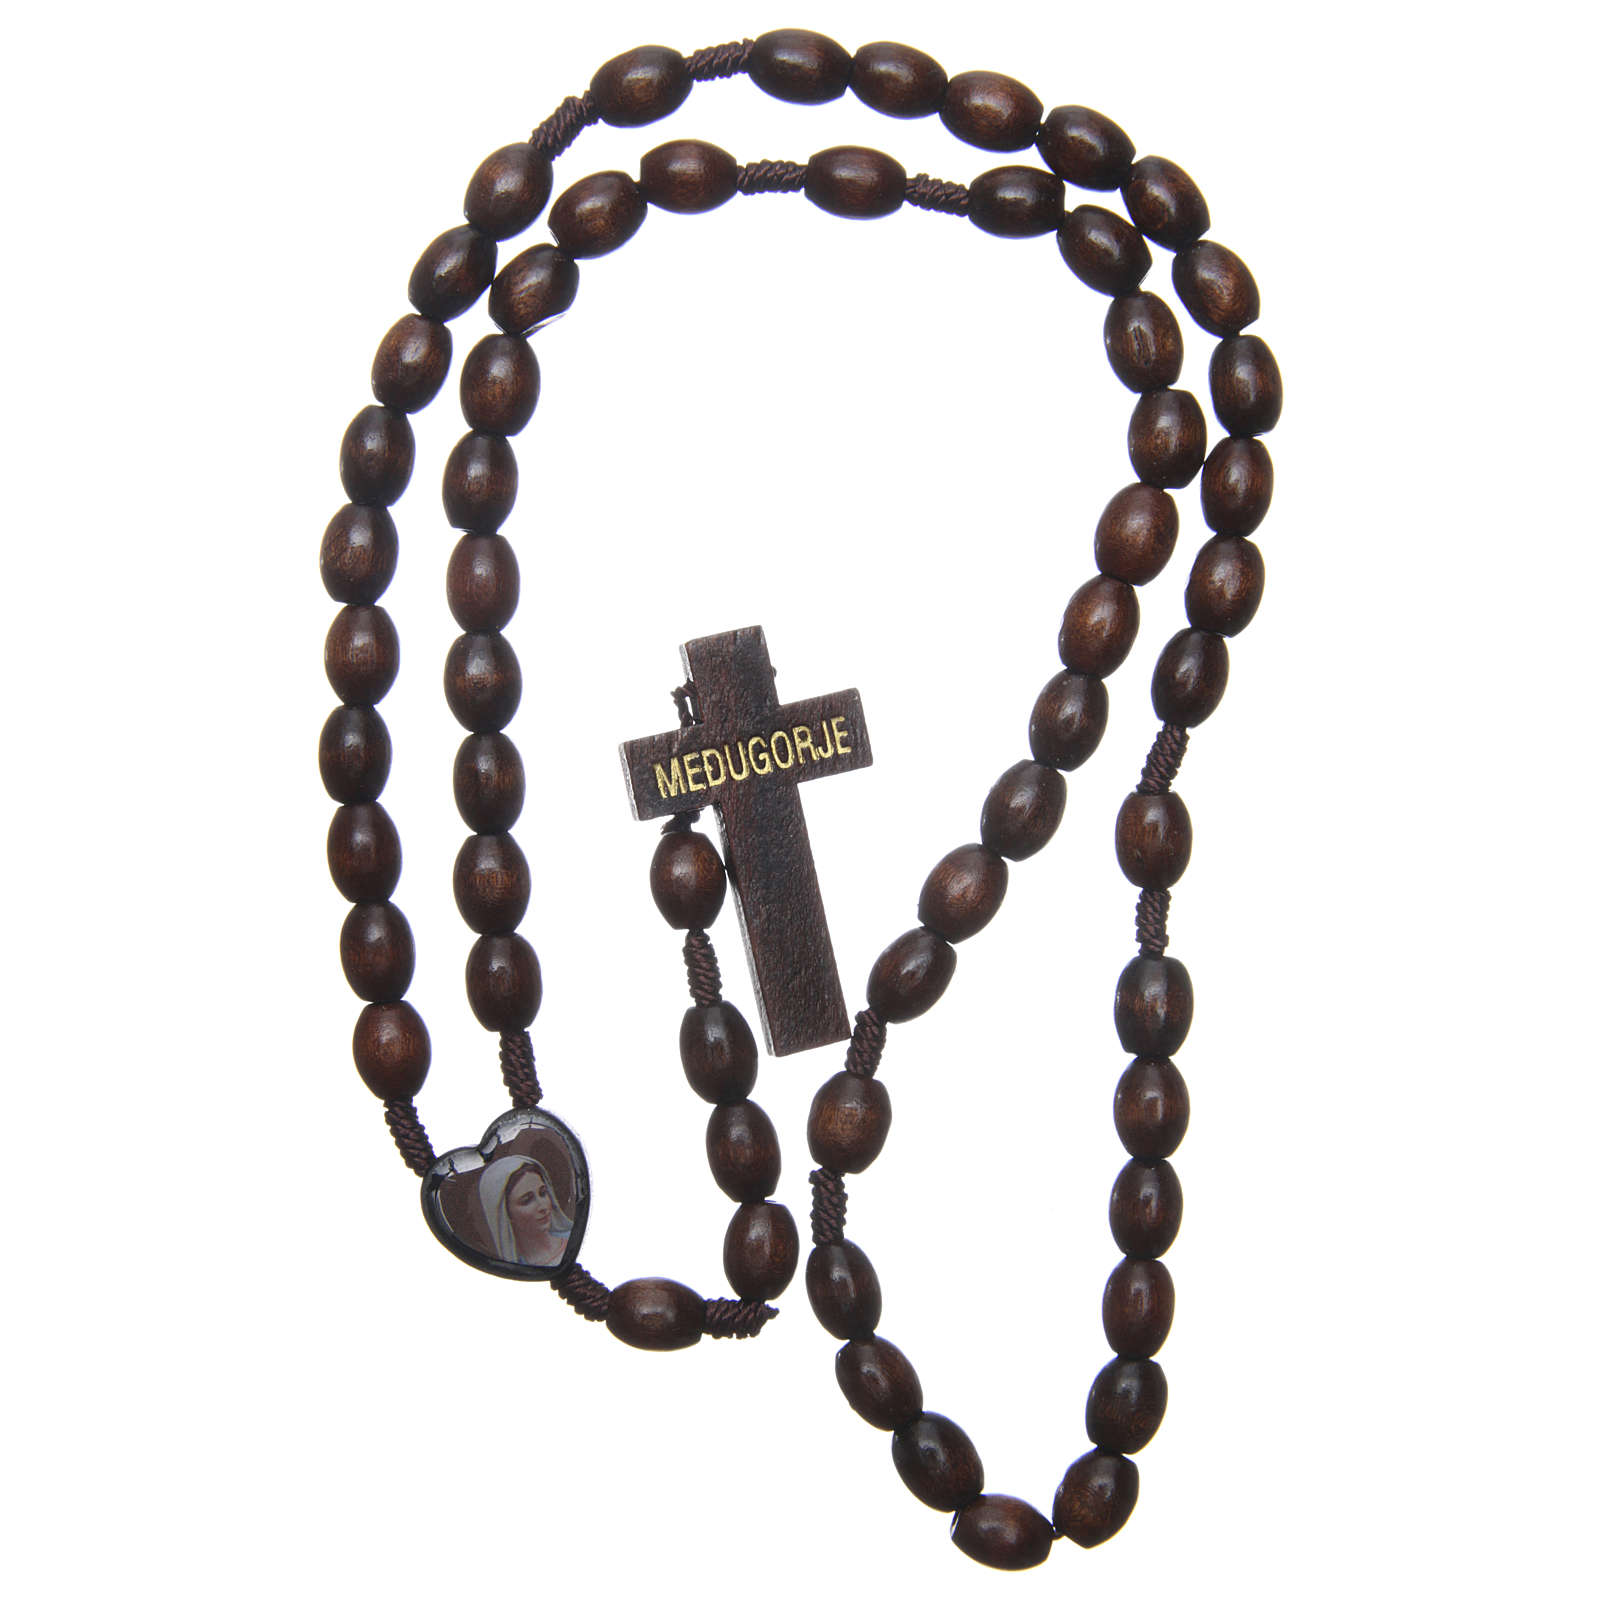 Medjugorje wooden rosary with oval grains 4